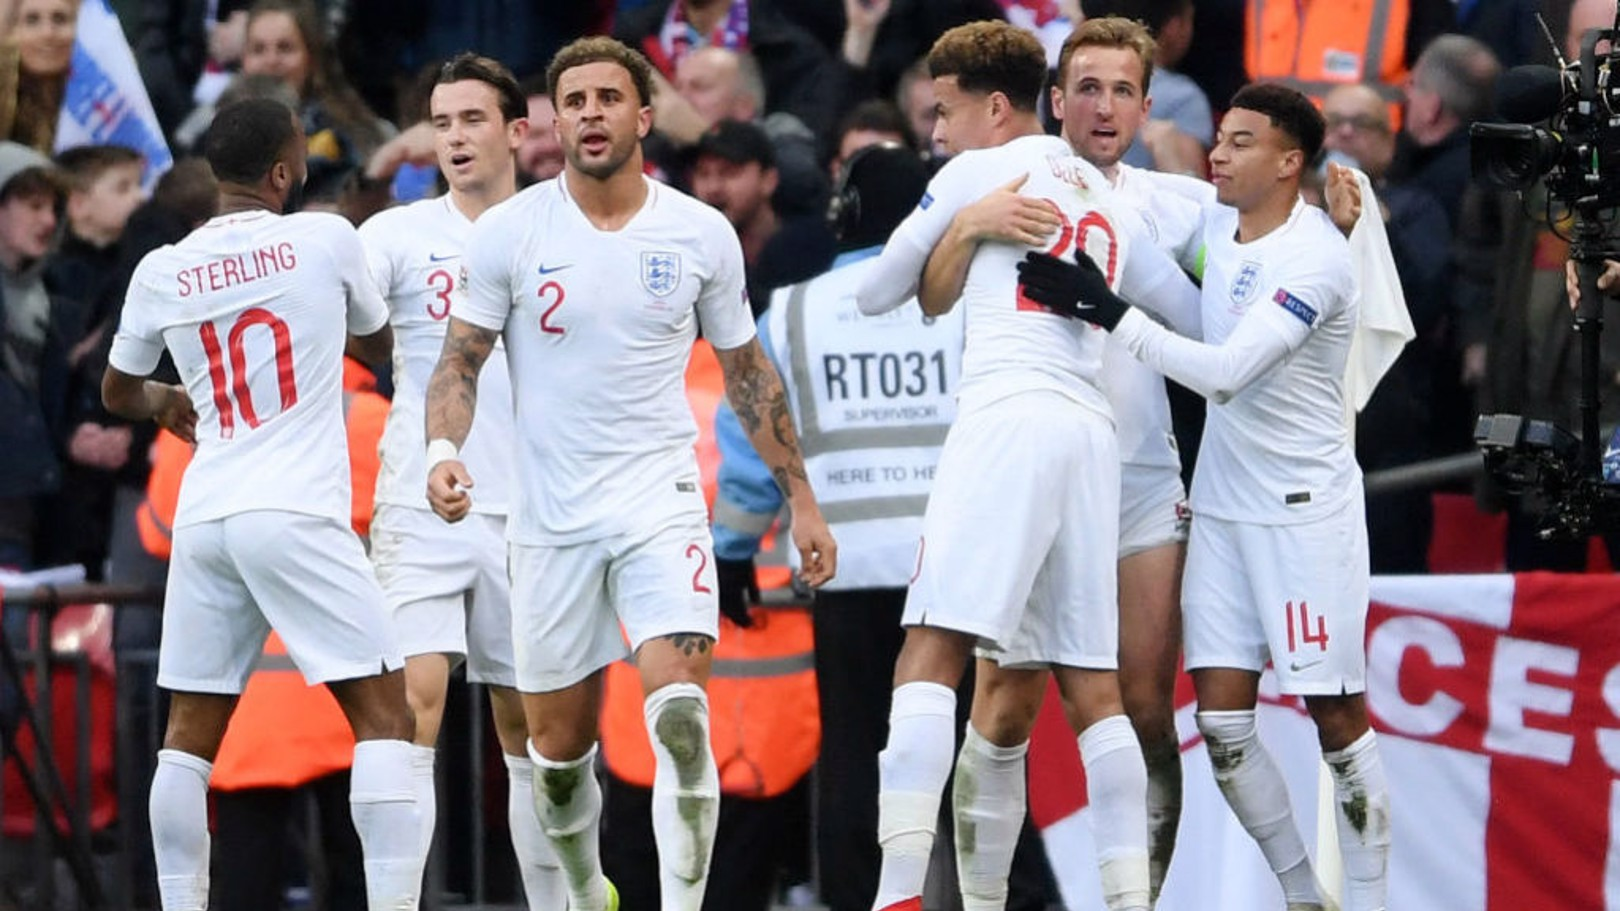 2020: The England squad for the Euro 2020 qualifiers against Czech Republic and Montenegro has been announced.